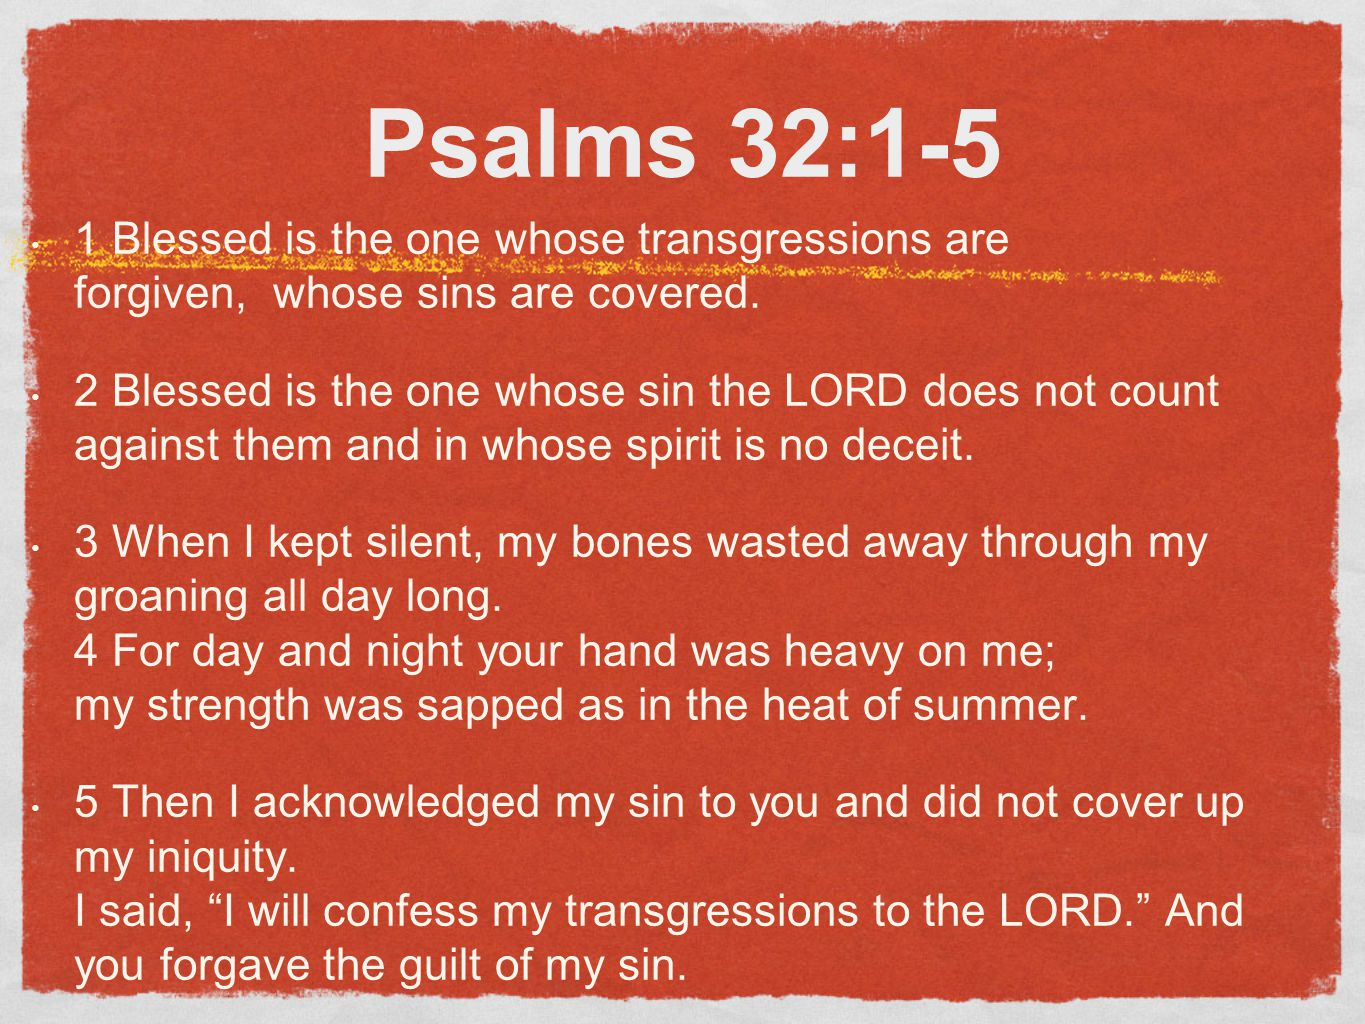 Dealing with Sin 1. Acknowledge 2. Take responsibility 3. Confess 4. Repent 5. Get up and move on